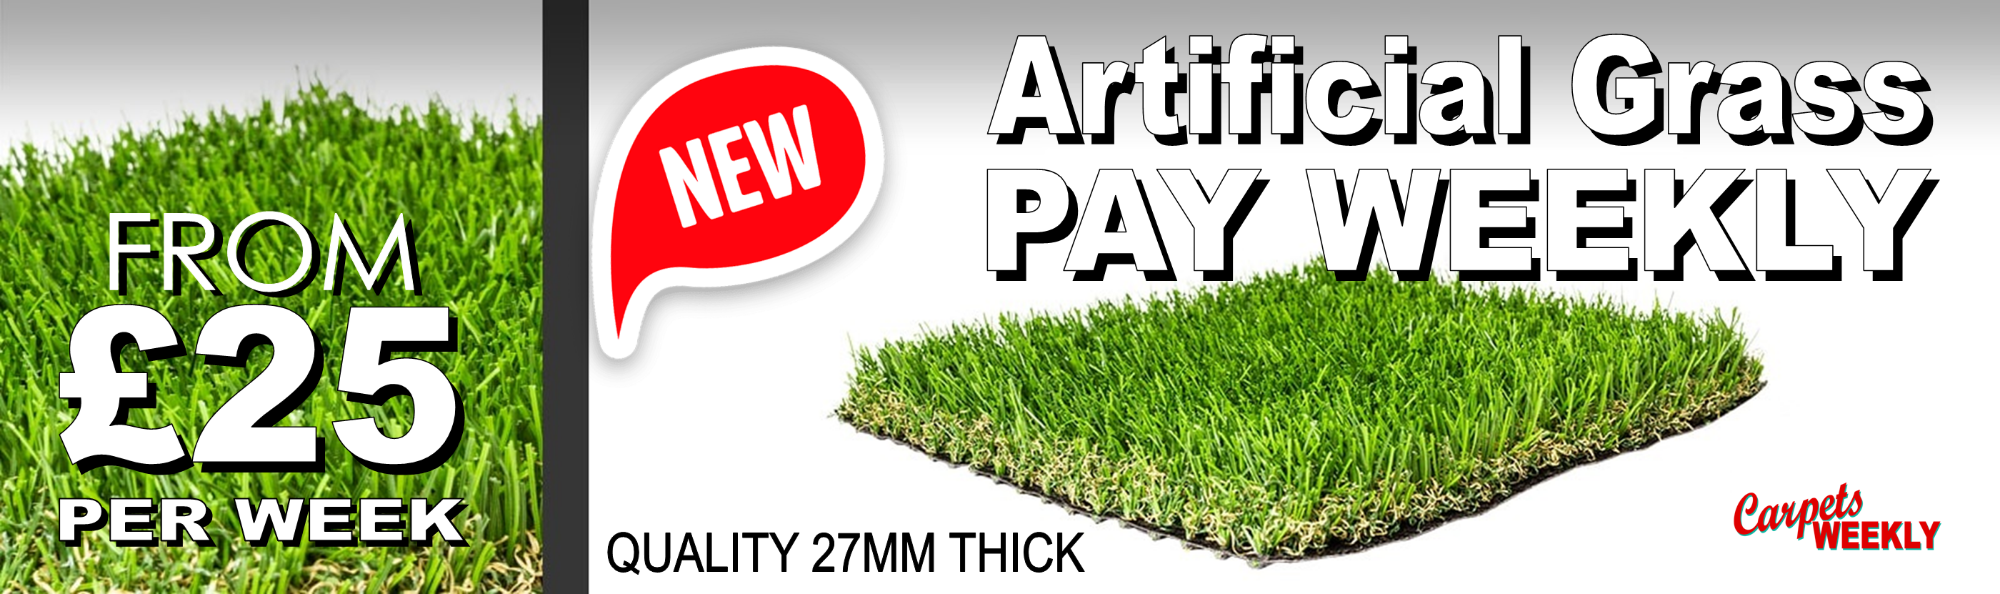 Artificial Grass - Pay Weekly